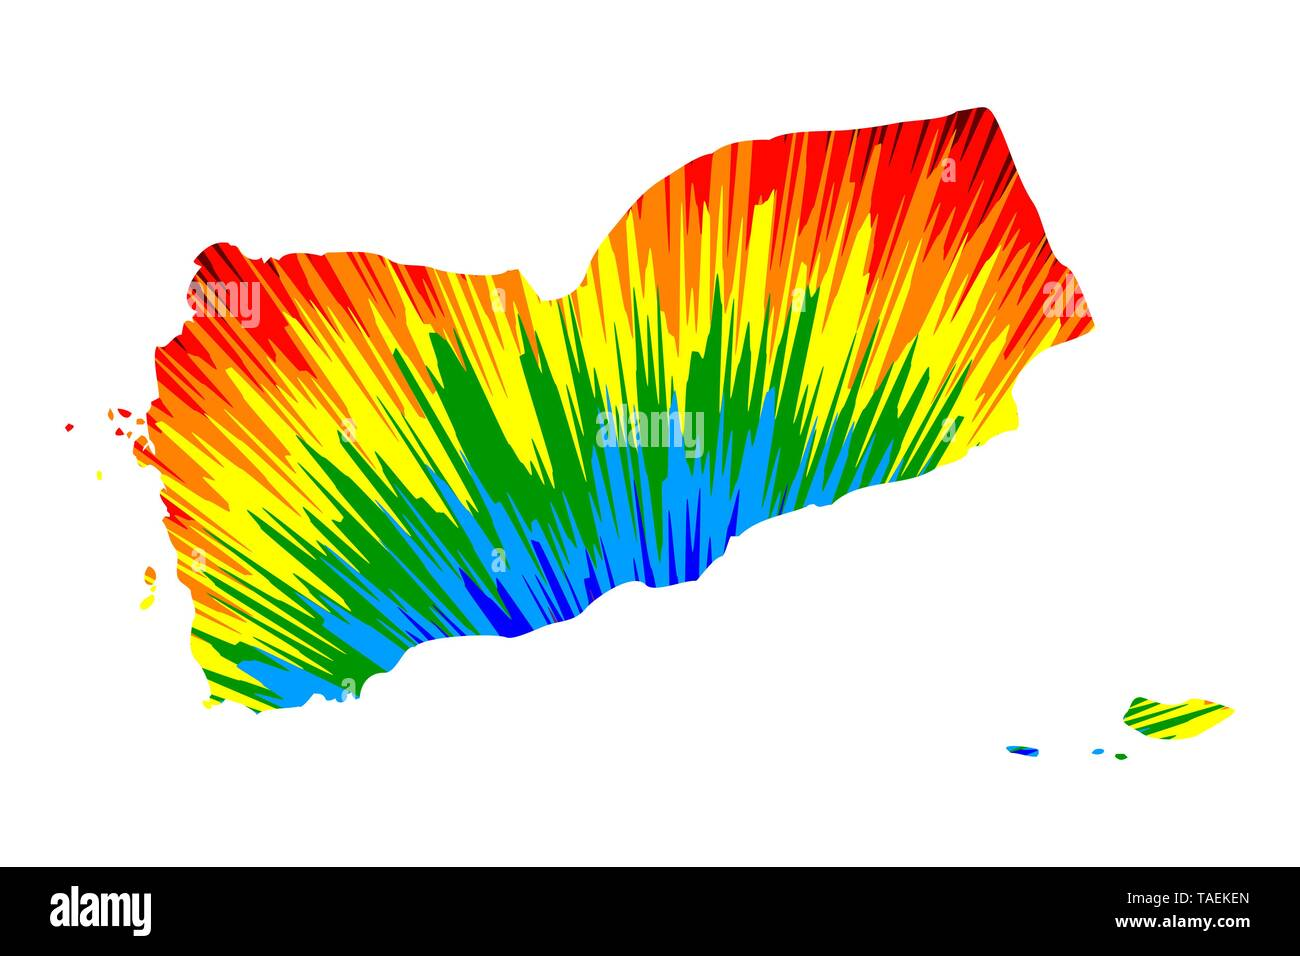 Yemen - map is designed rainbow abstract colorful pattern, Republic of Yemen map made of color explosion, - Stock Image